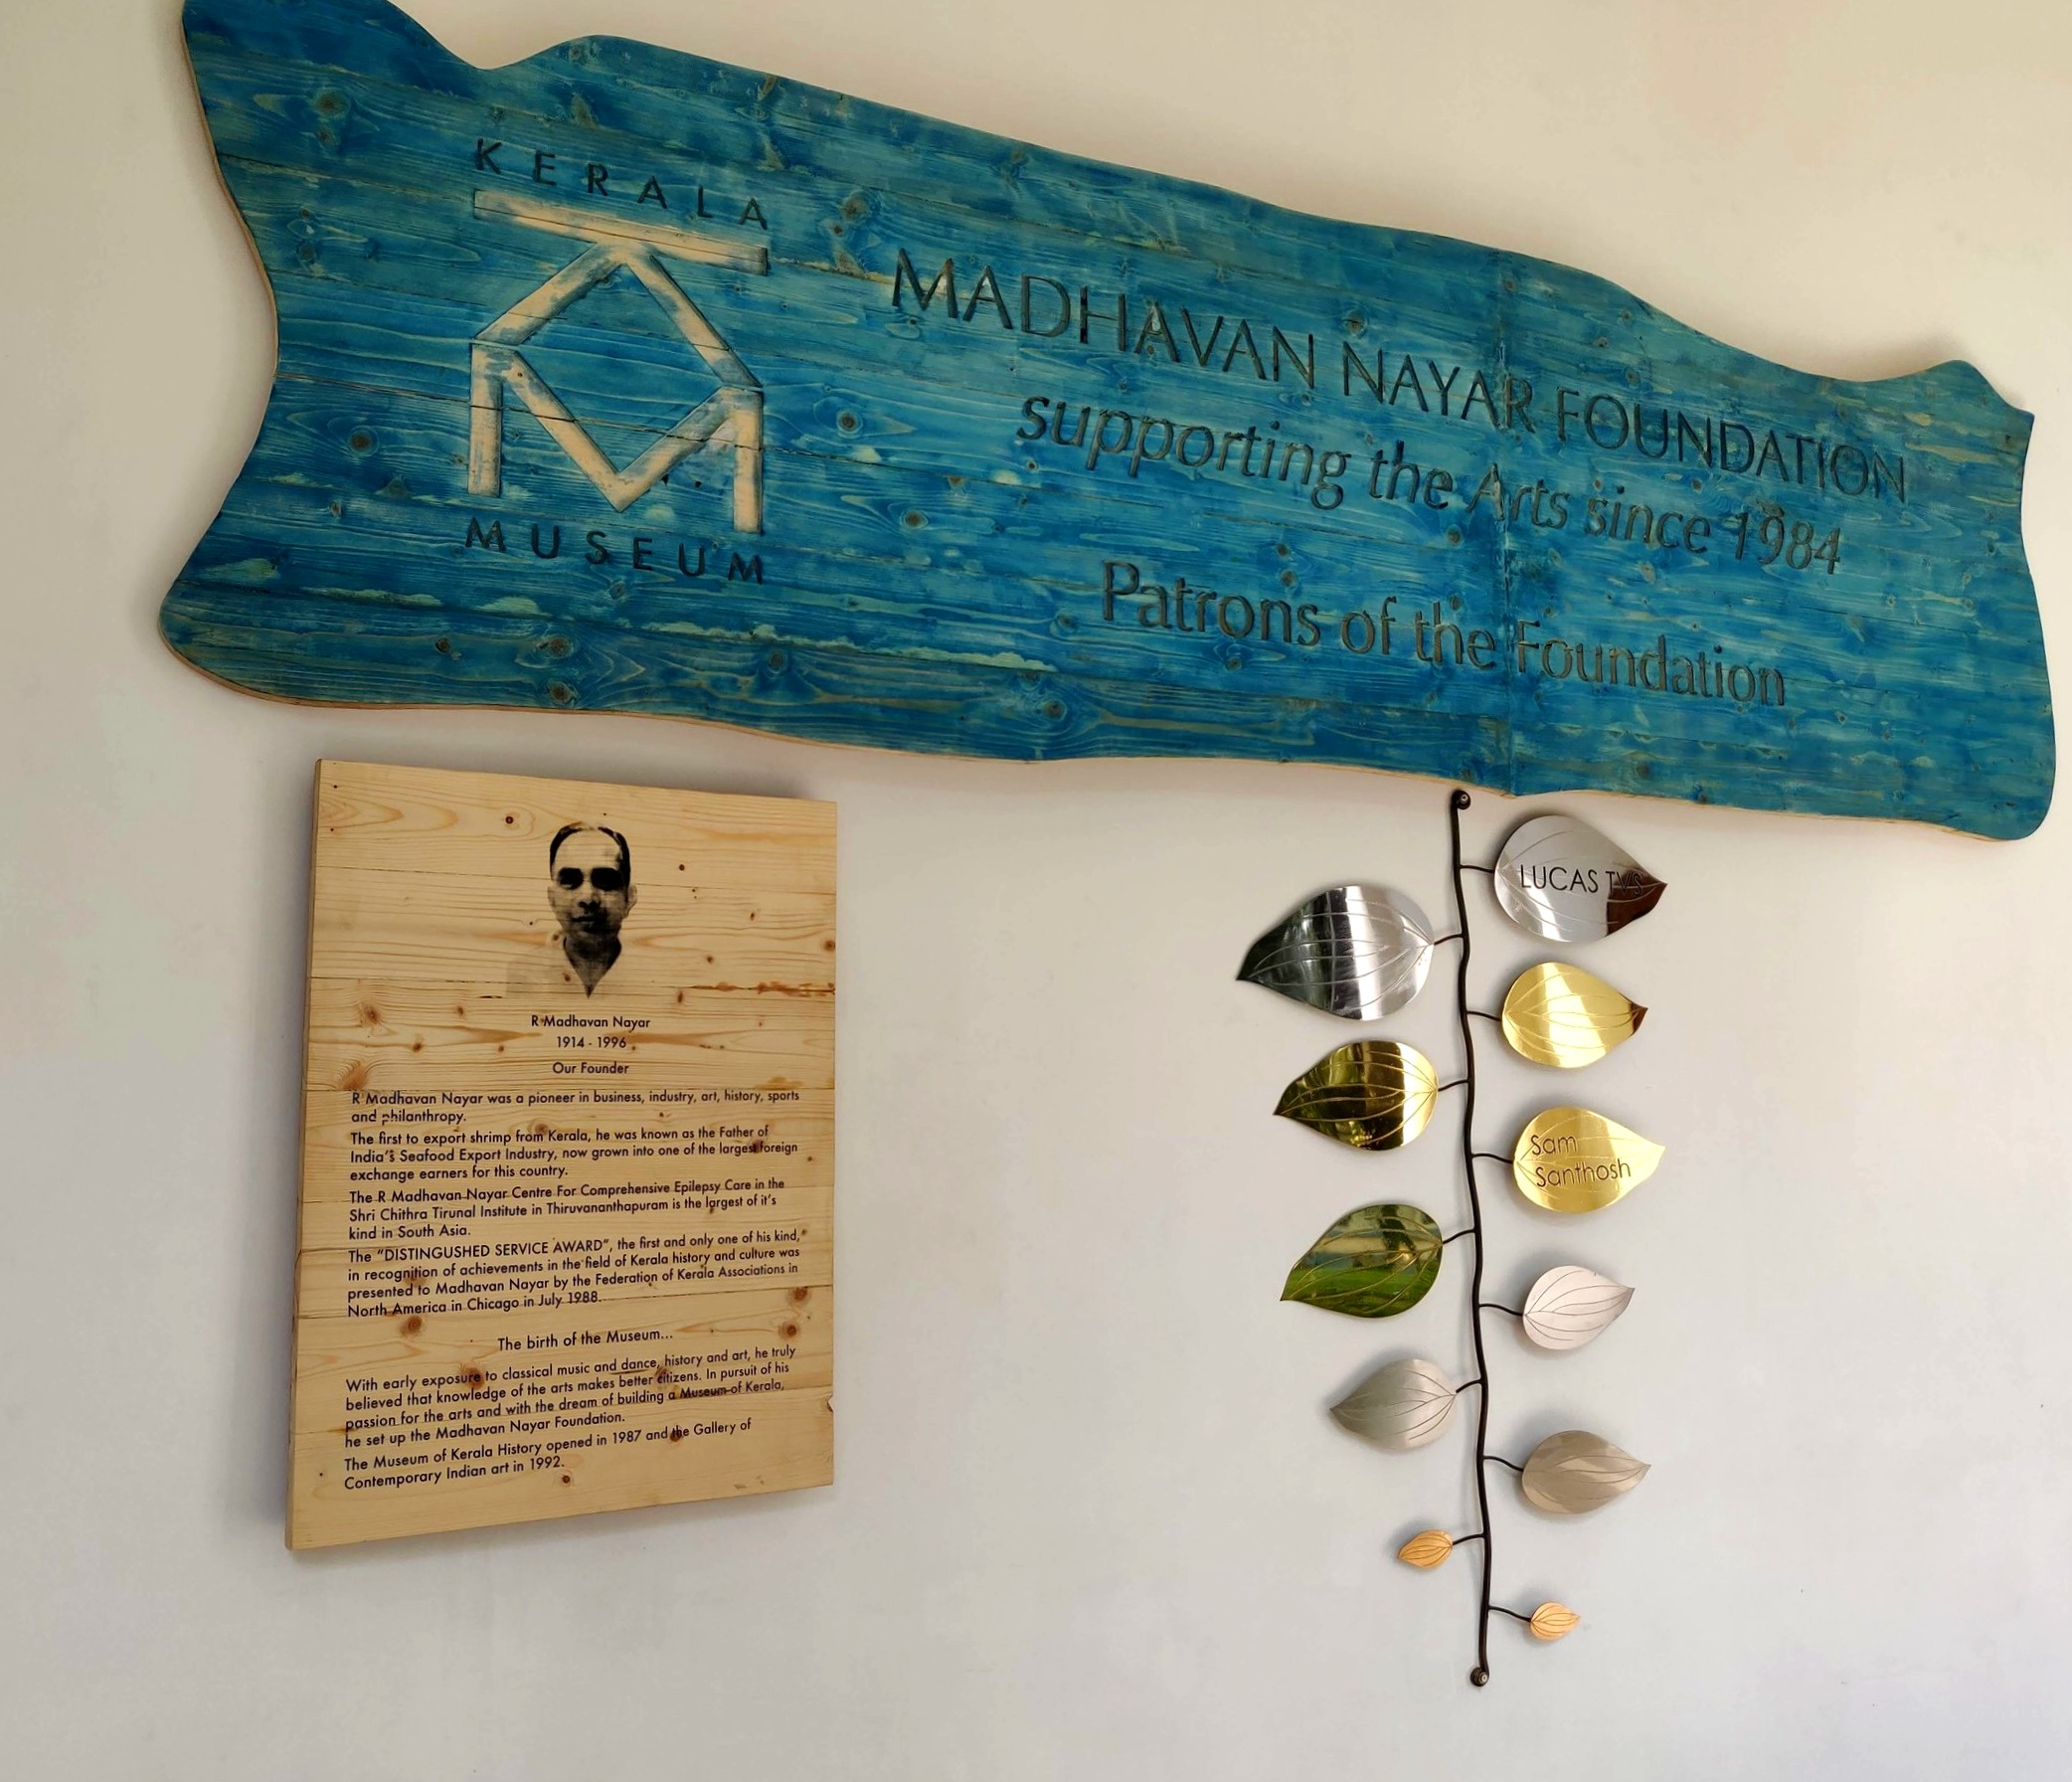 Leave a legacy for the future - Become a patron of the Kerala Museum